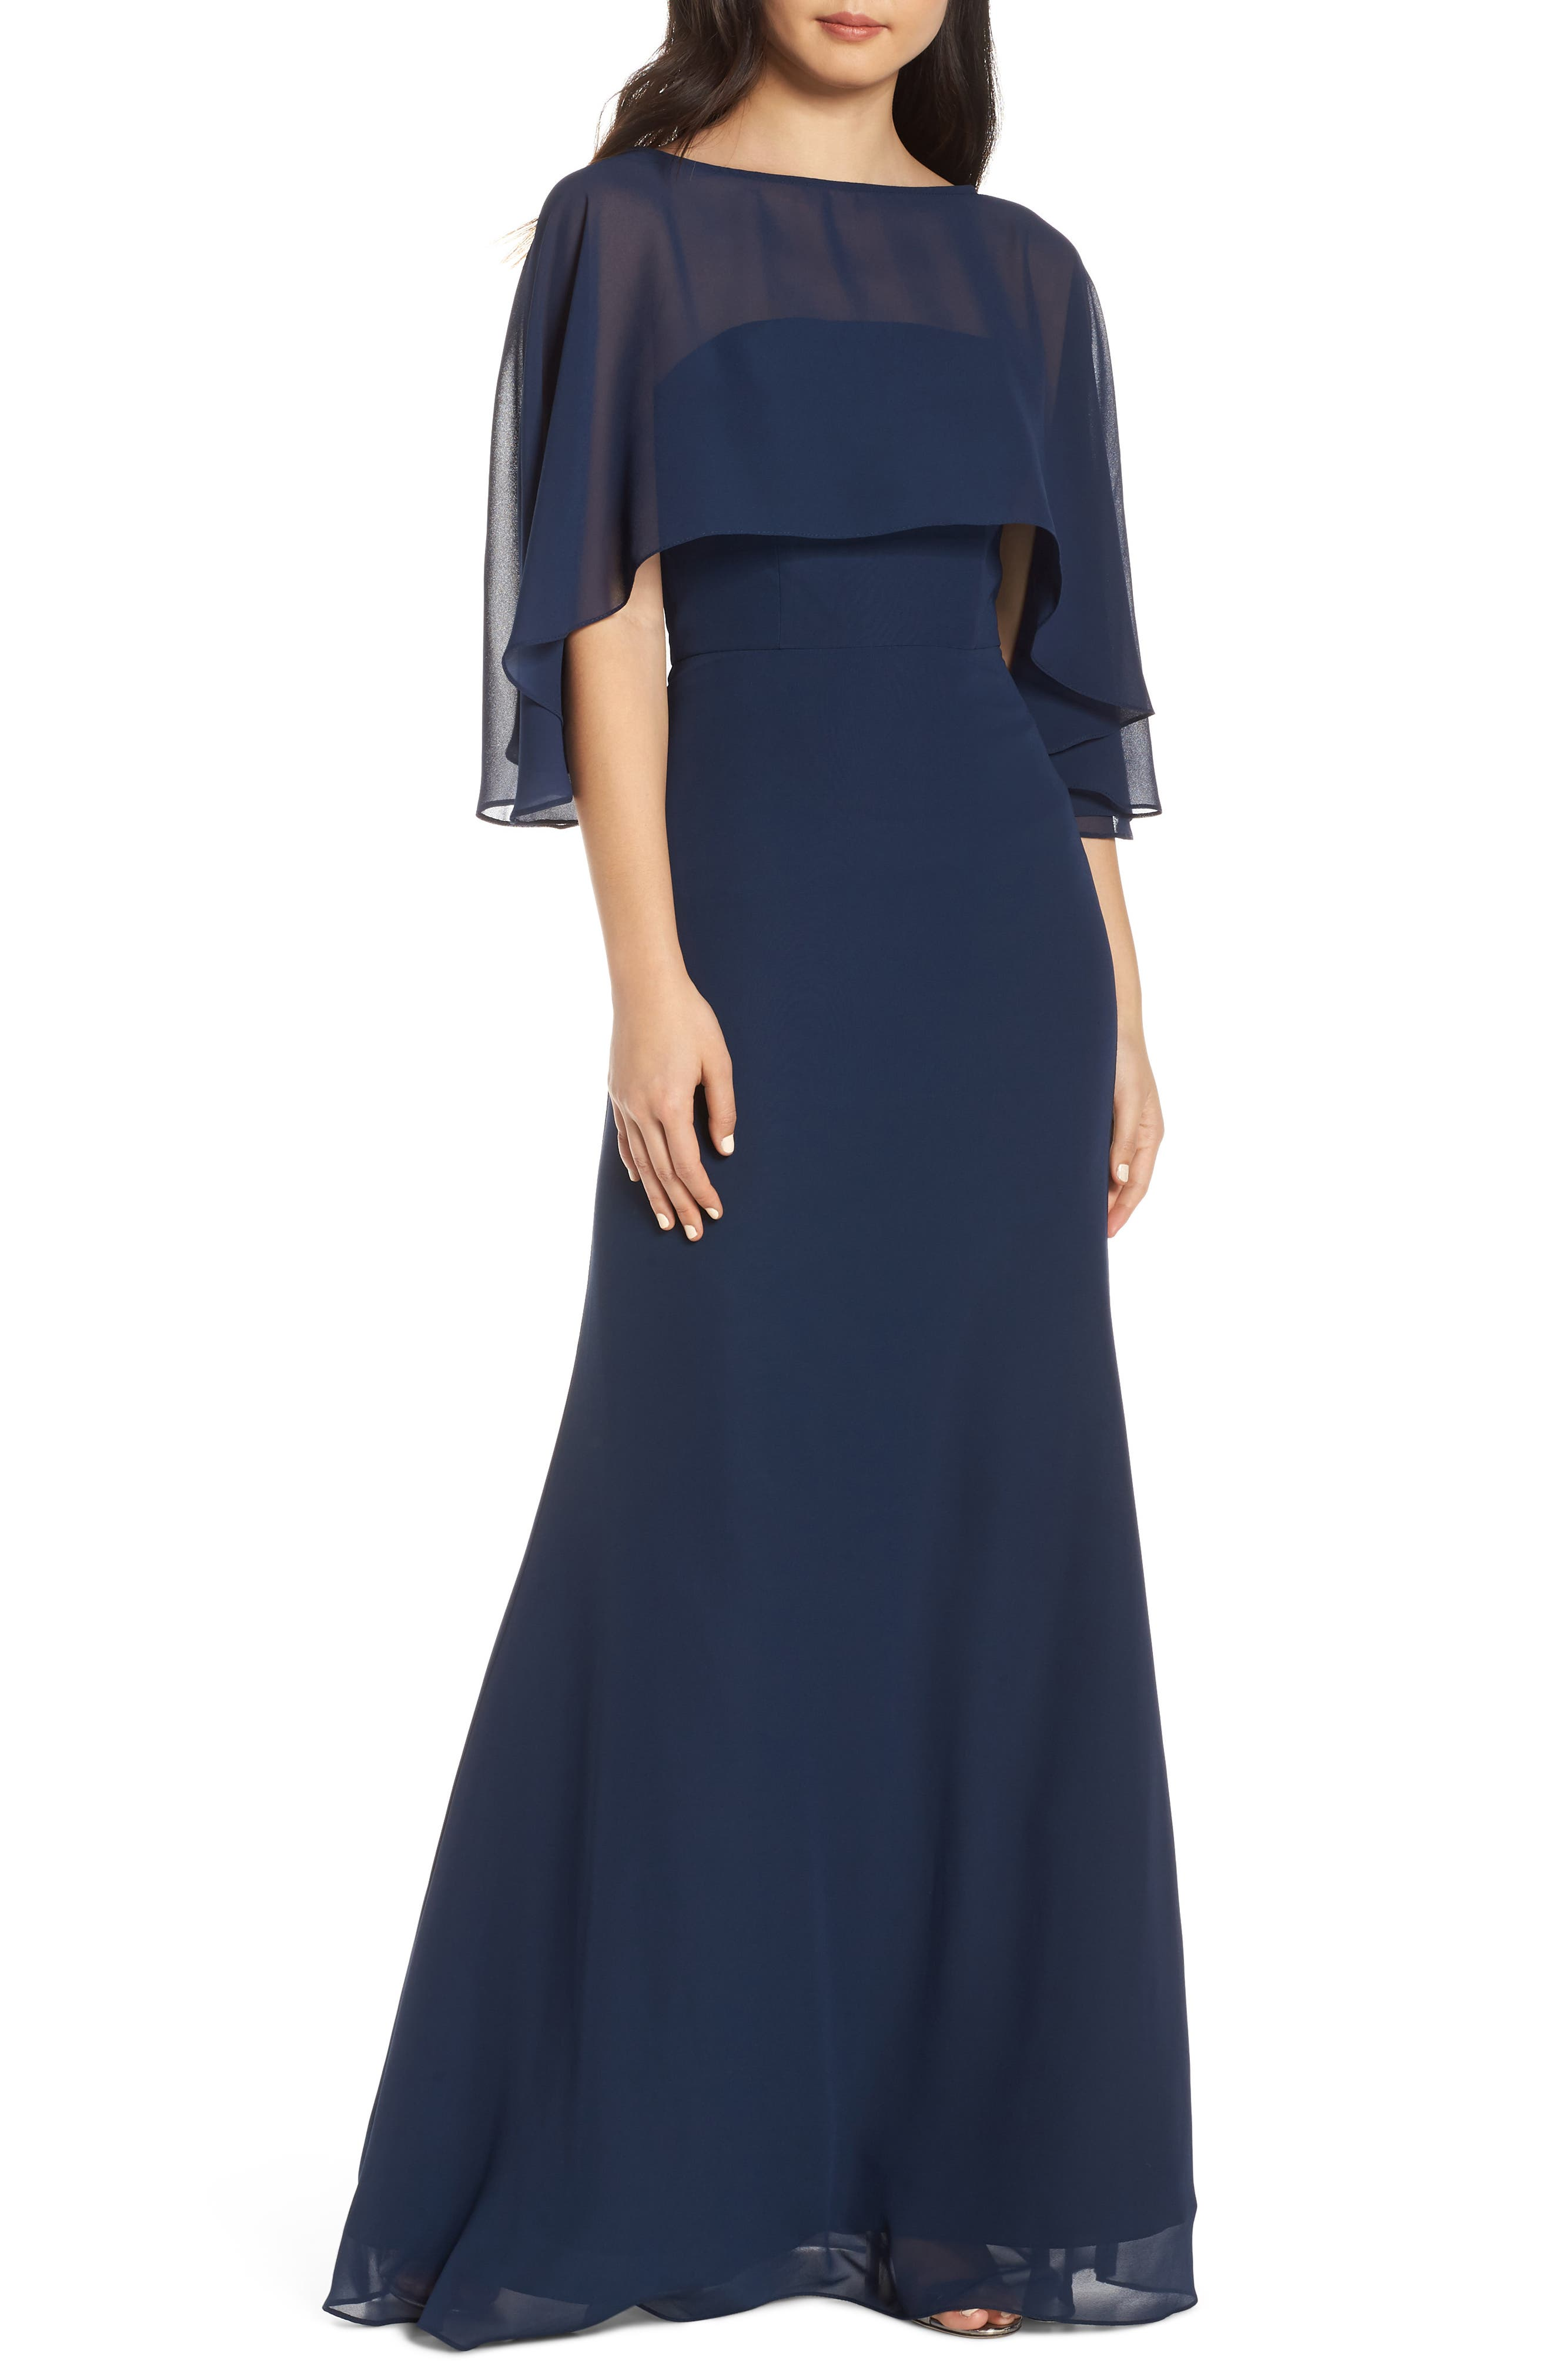 Hayley Paige Occasions Strapless Chiffon Evening Dress With Cape, Blue